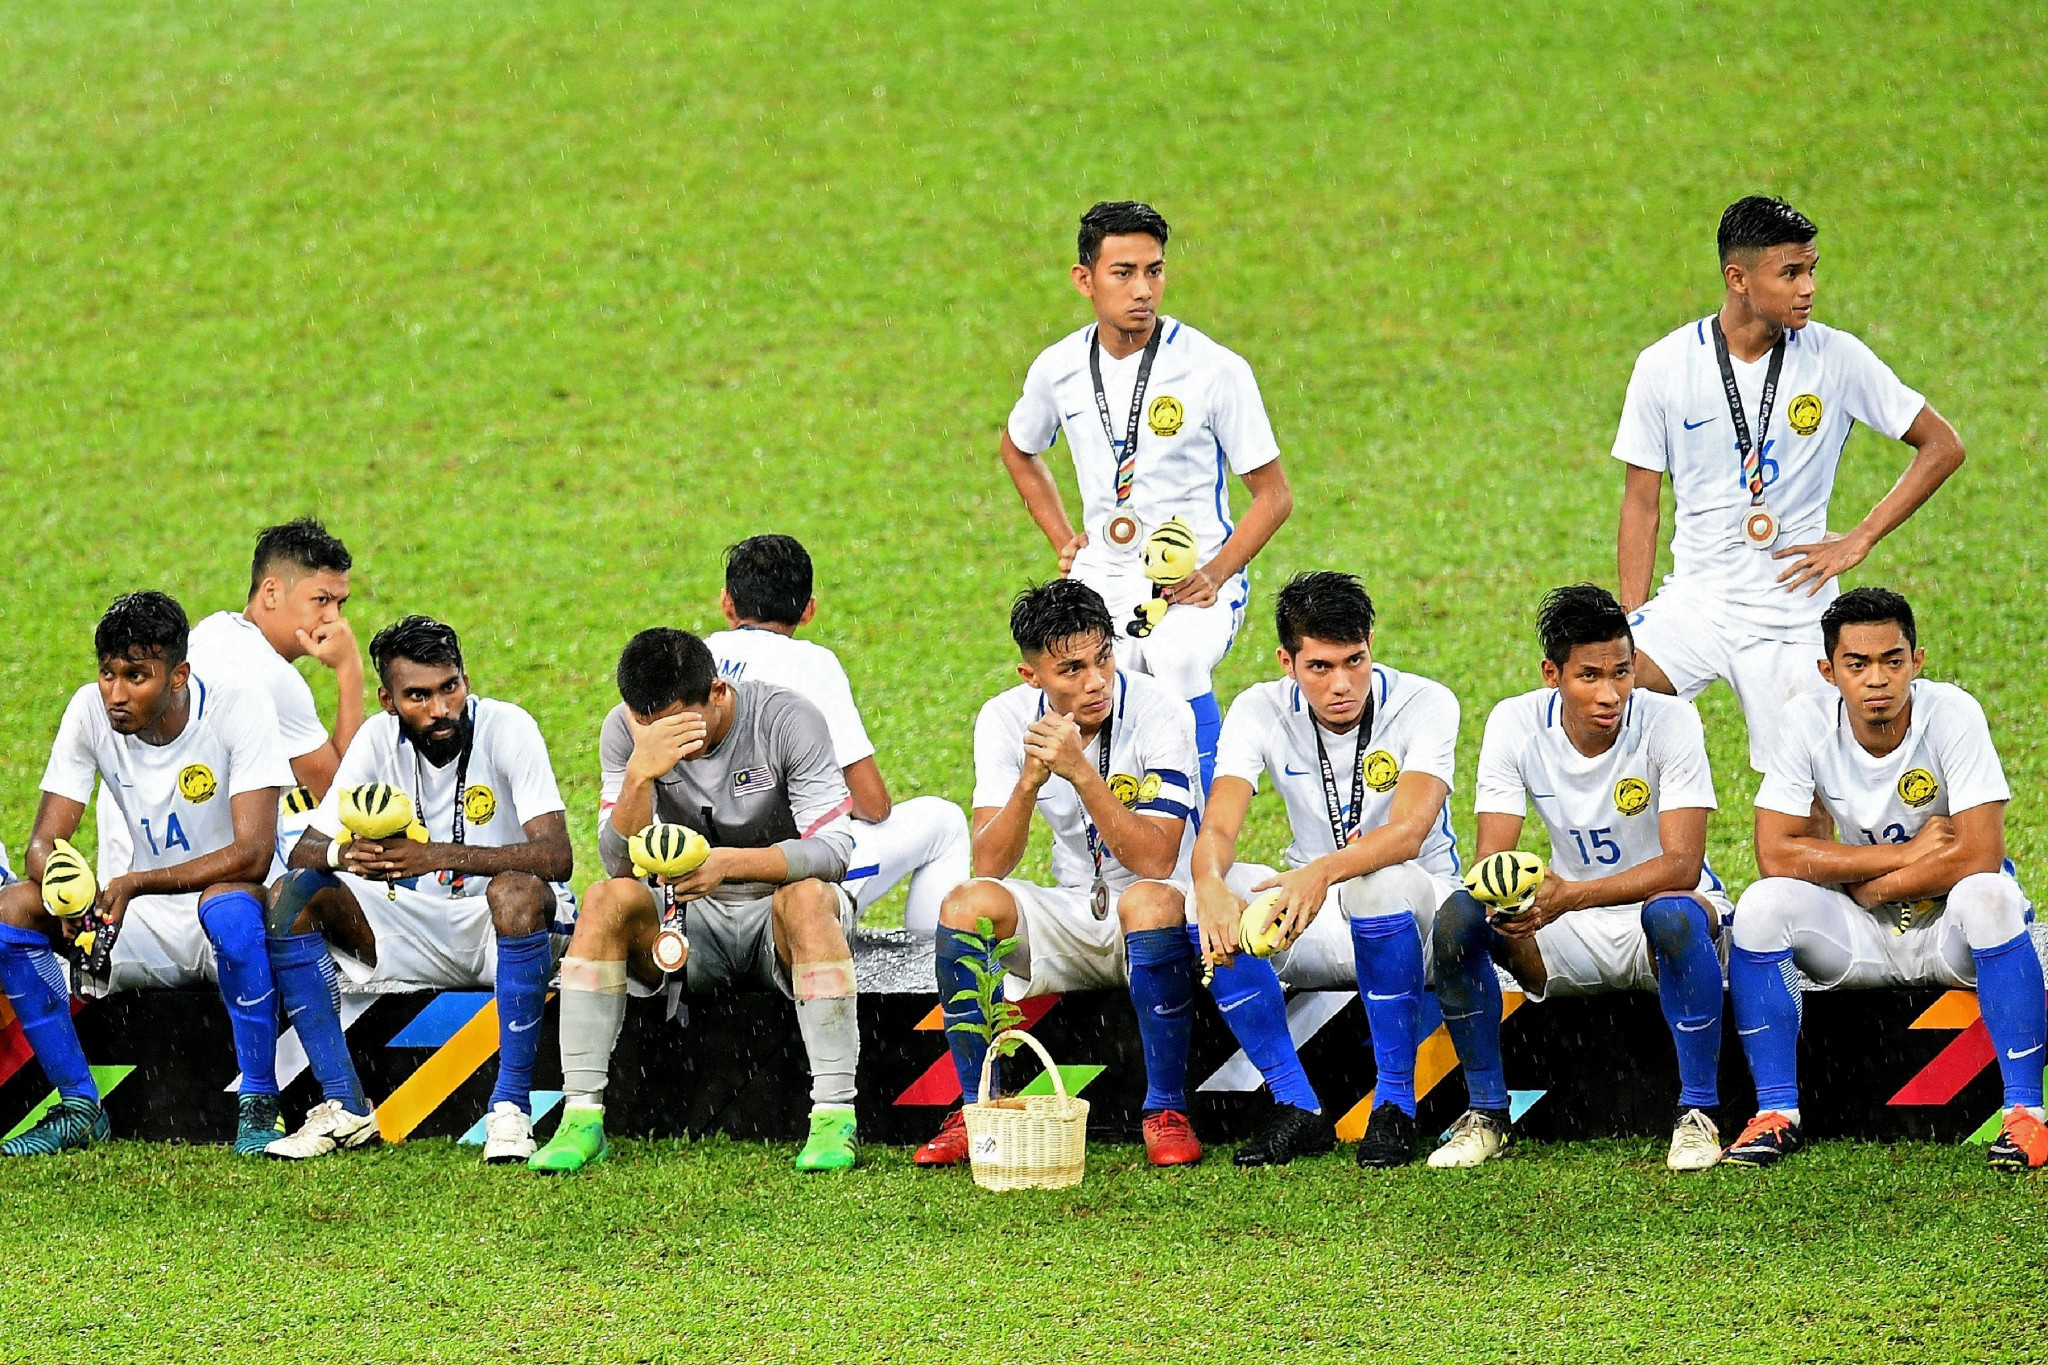 Malaysian footballers are unable to travel to North Korea because of Kuala Lumpur's ban on travel to the latter. ©Getty Images